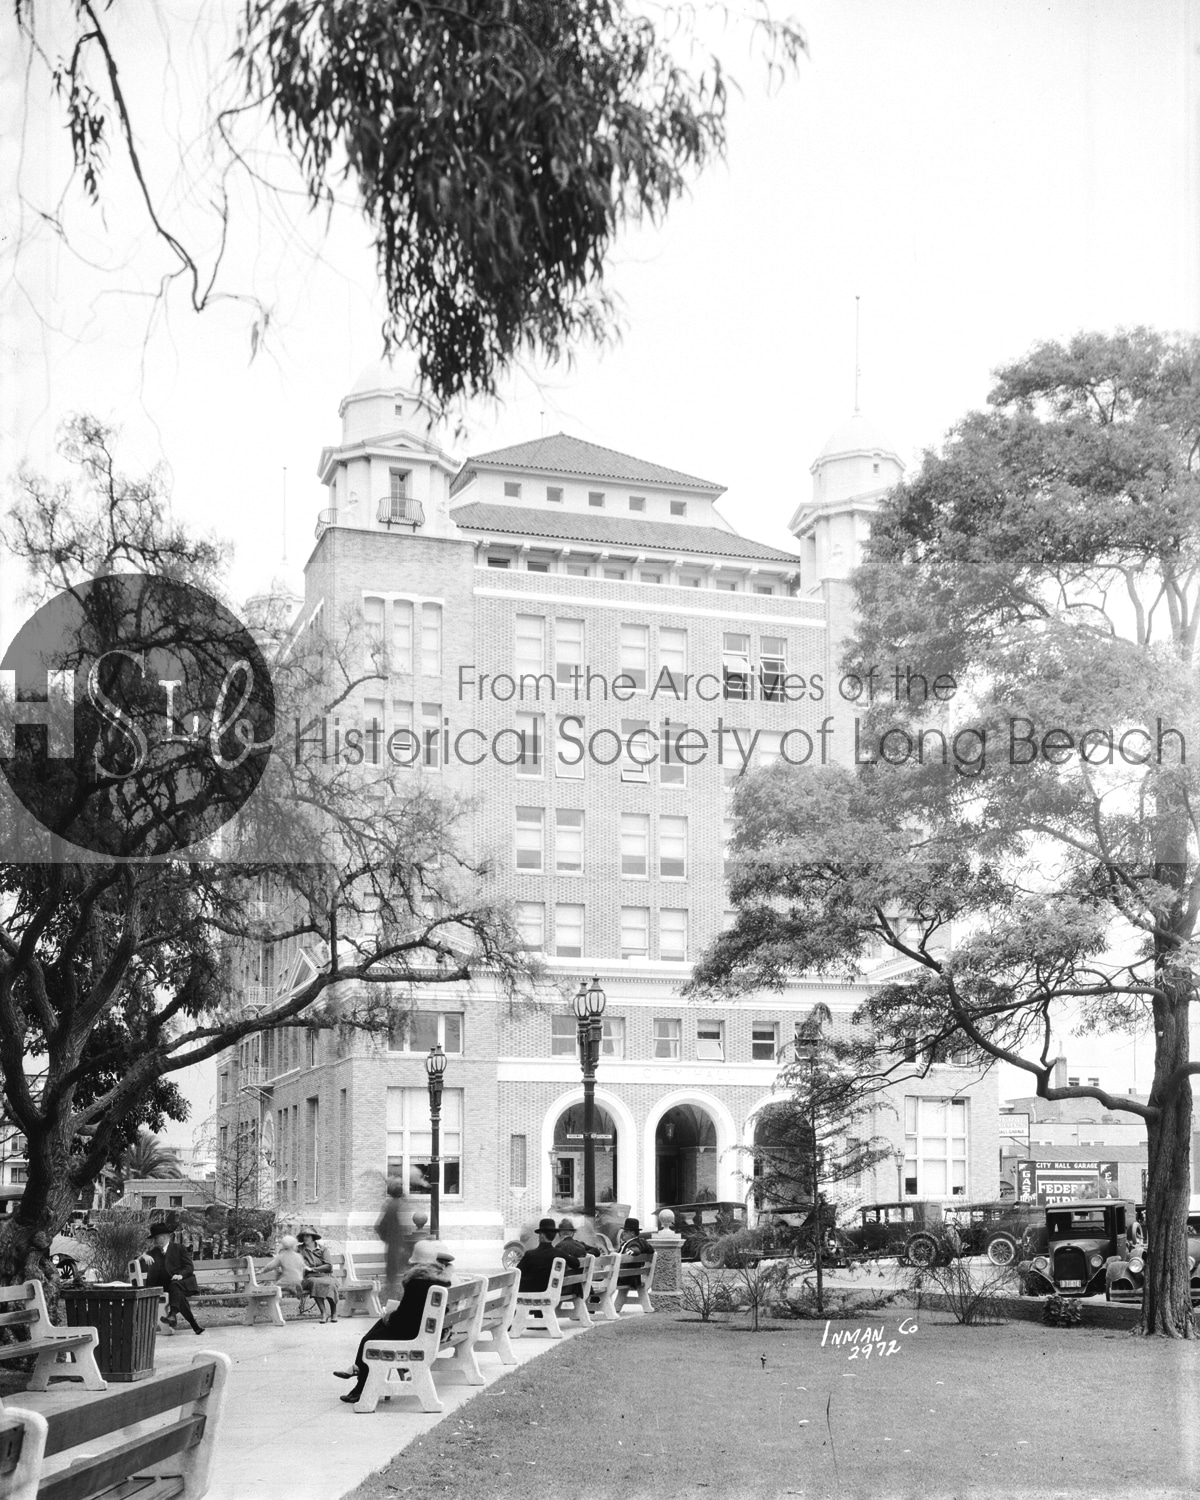 Historical long beach building photograph